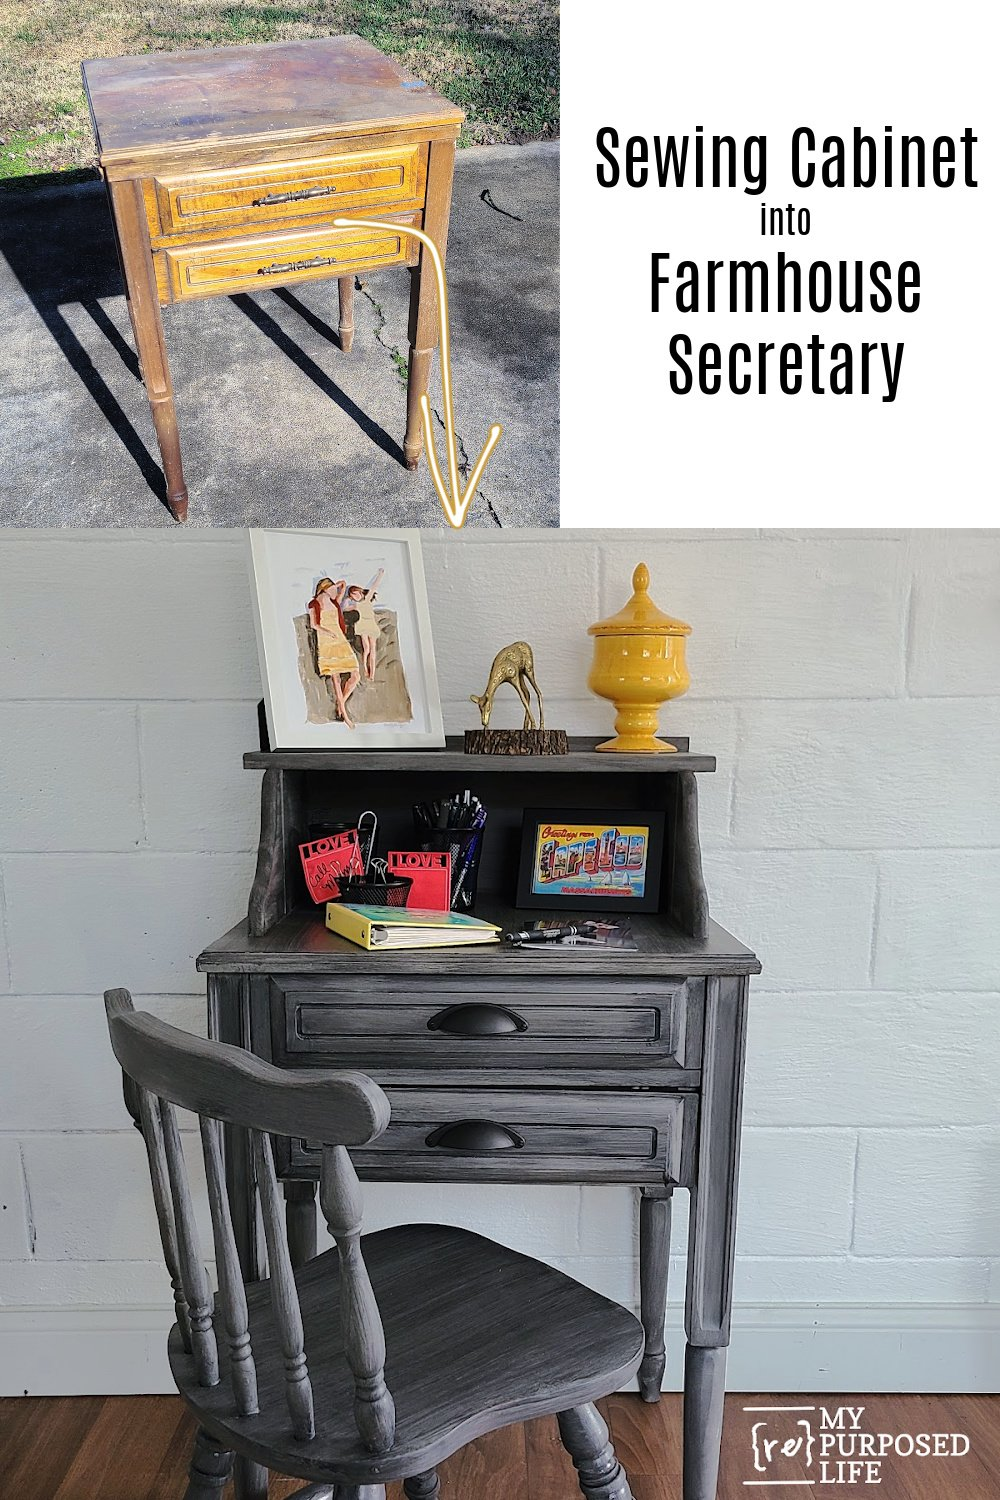 Step by step directions on how to make a secretary desk from an unwanted sewing cabinet. Perfect for laptop, or bill paying center. Tips for building and painting. #MyRepurposedLife #repurposed #upcycle #sewingcabinet #secretary via @repurposedlife via @repurposedlife